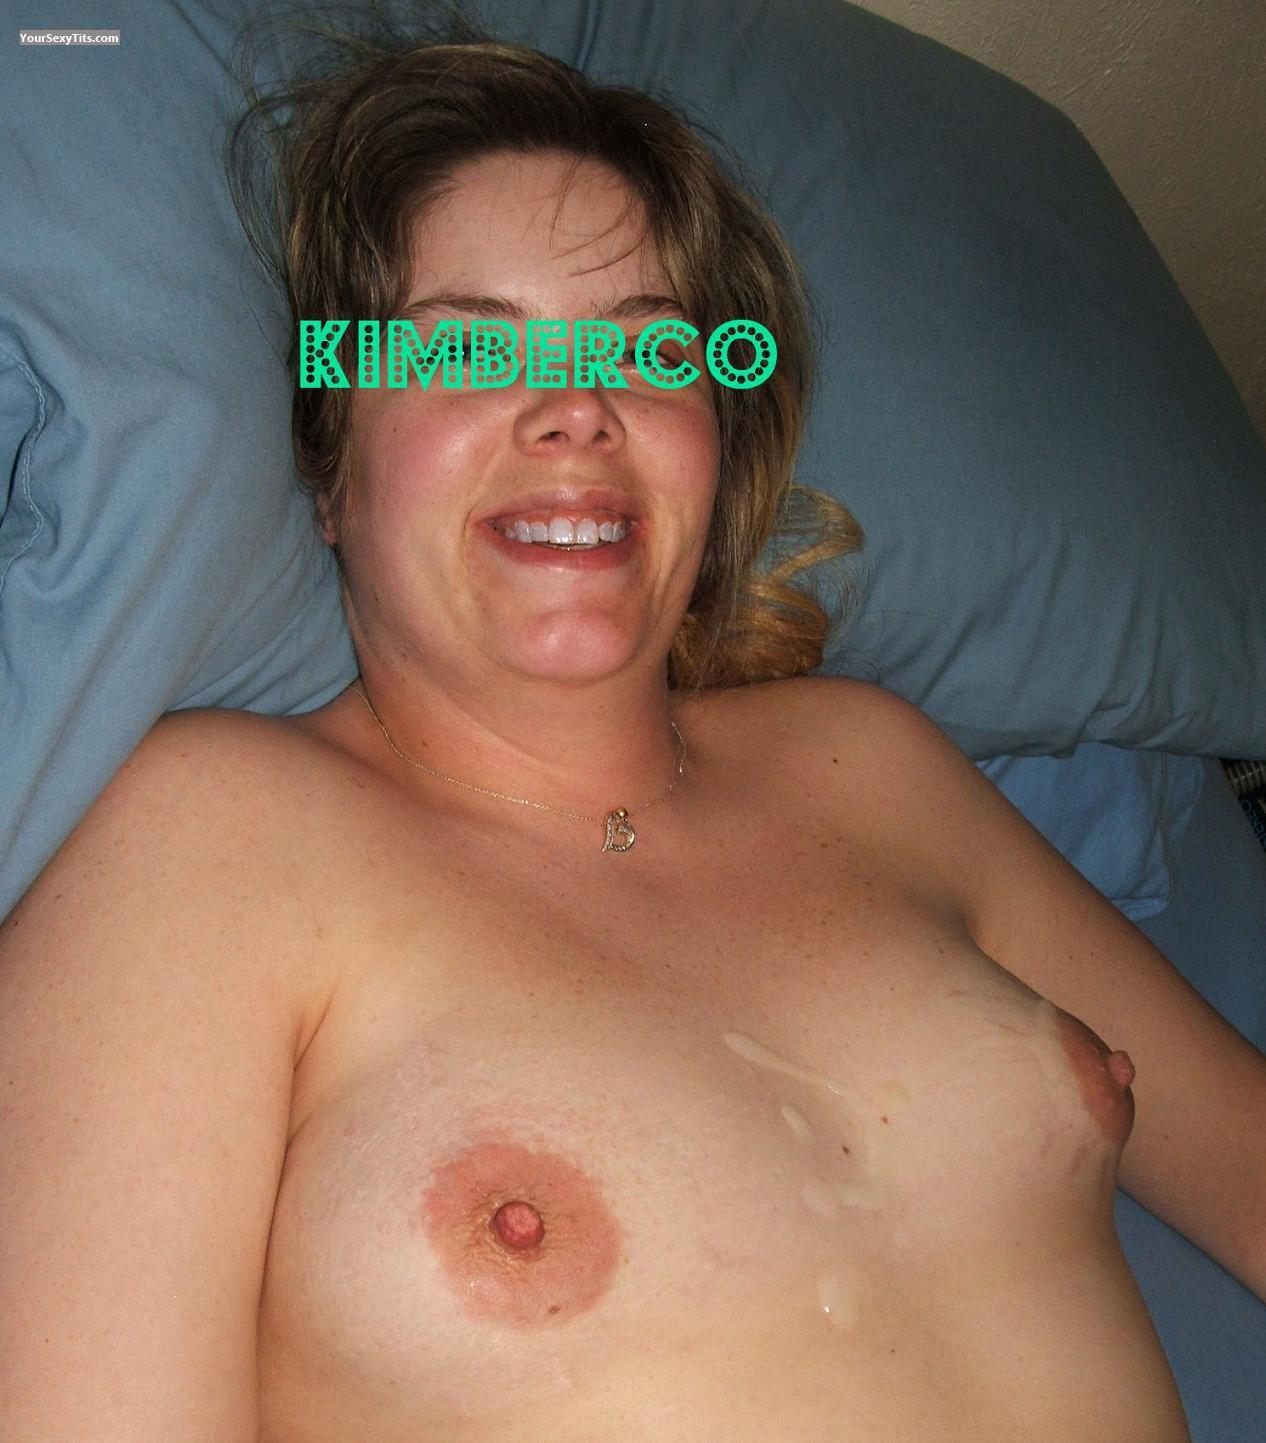 Medium Tits Kimberco